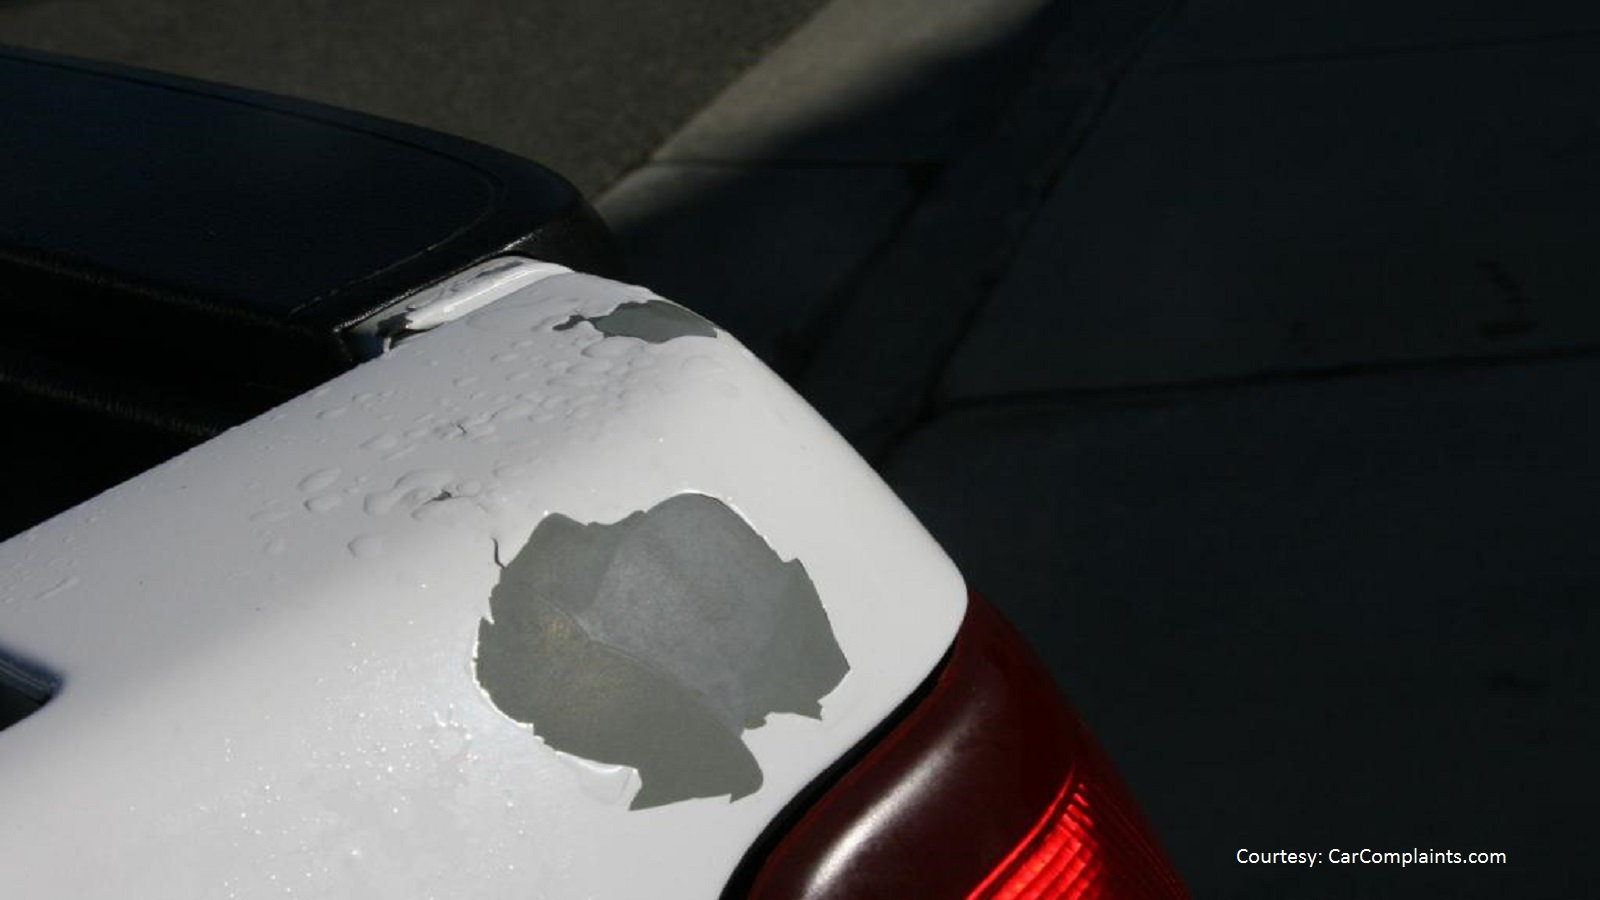 Flaking and Peeling Paint on a 2002 Silverado